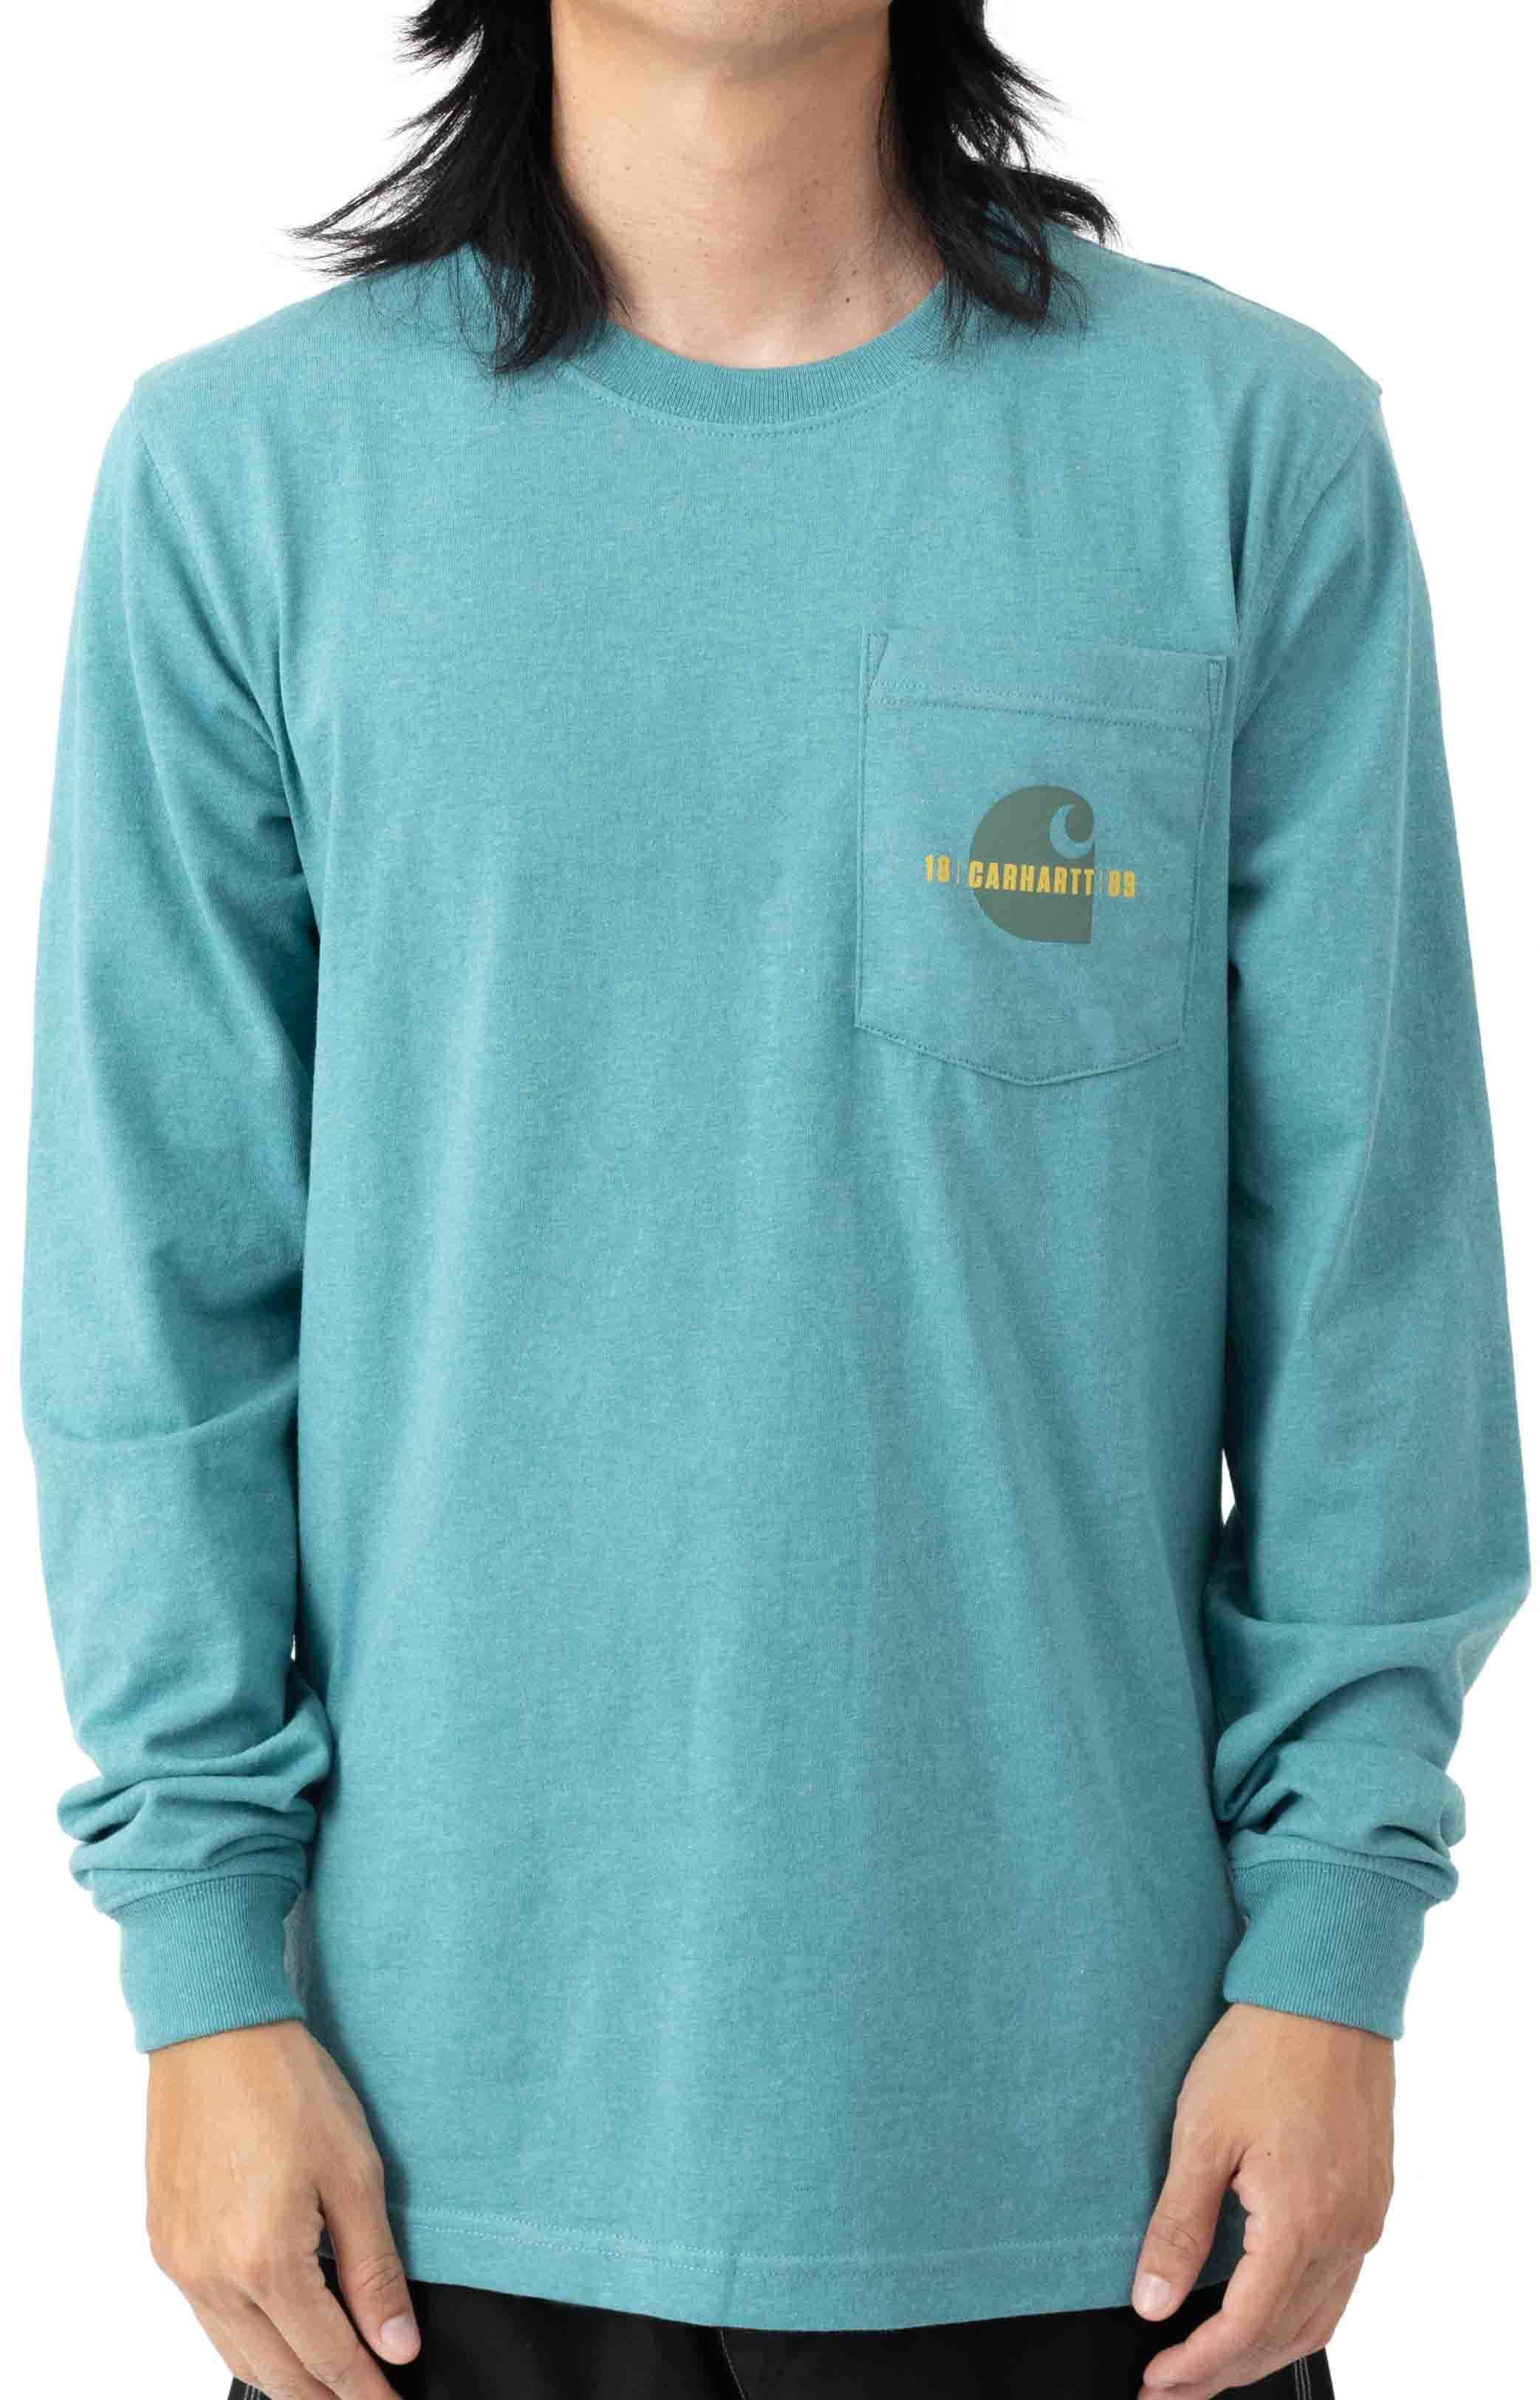 (105054) Loose Fit Heavyweight L/S Pocket Carhartt C Graphic T-Shirt - Blue Spruce Heather 2